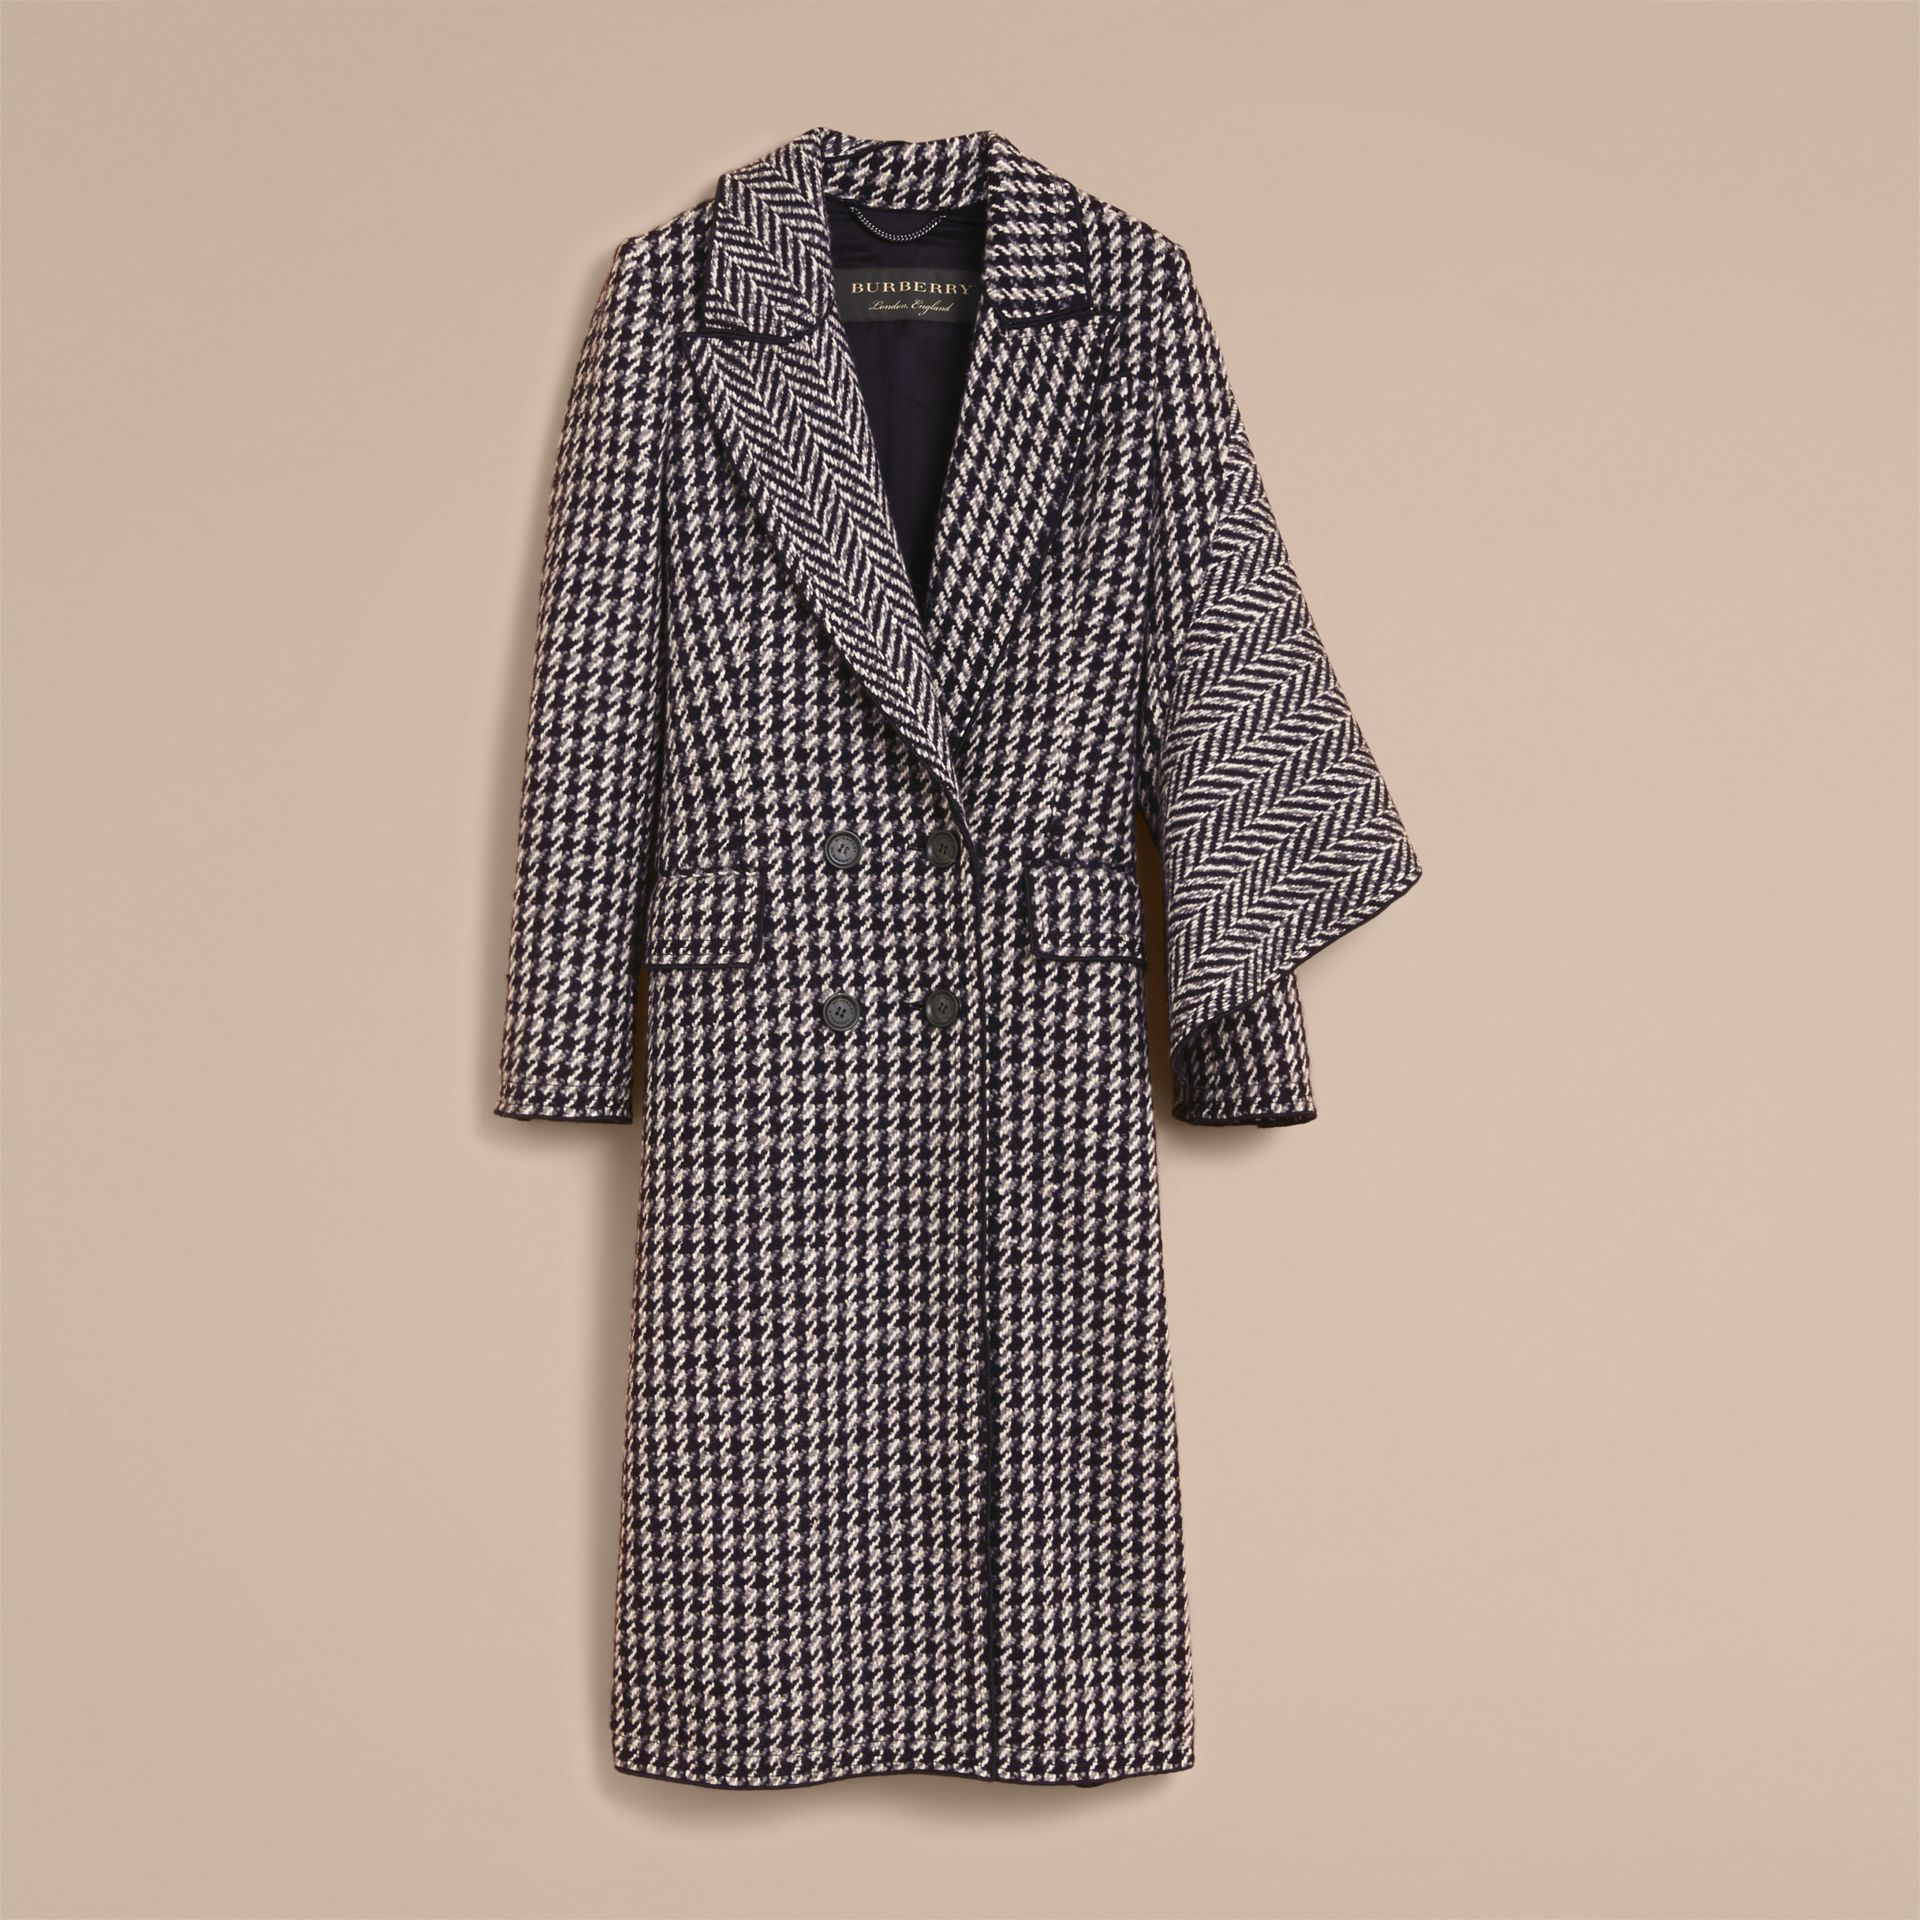 Sculptural Panel Houndstooth Wool A-line Coat - Women | Burberry - gallery image 4